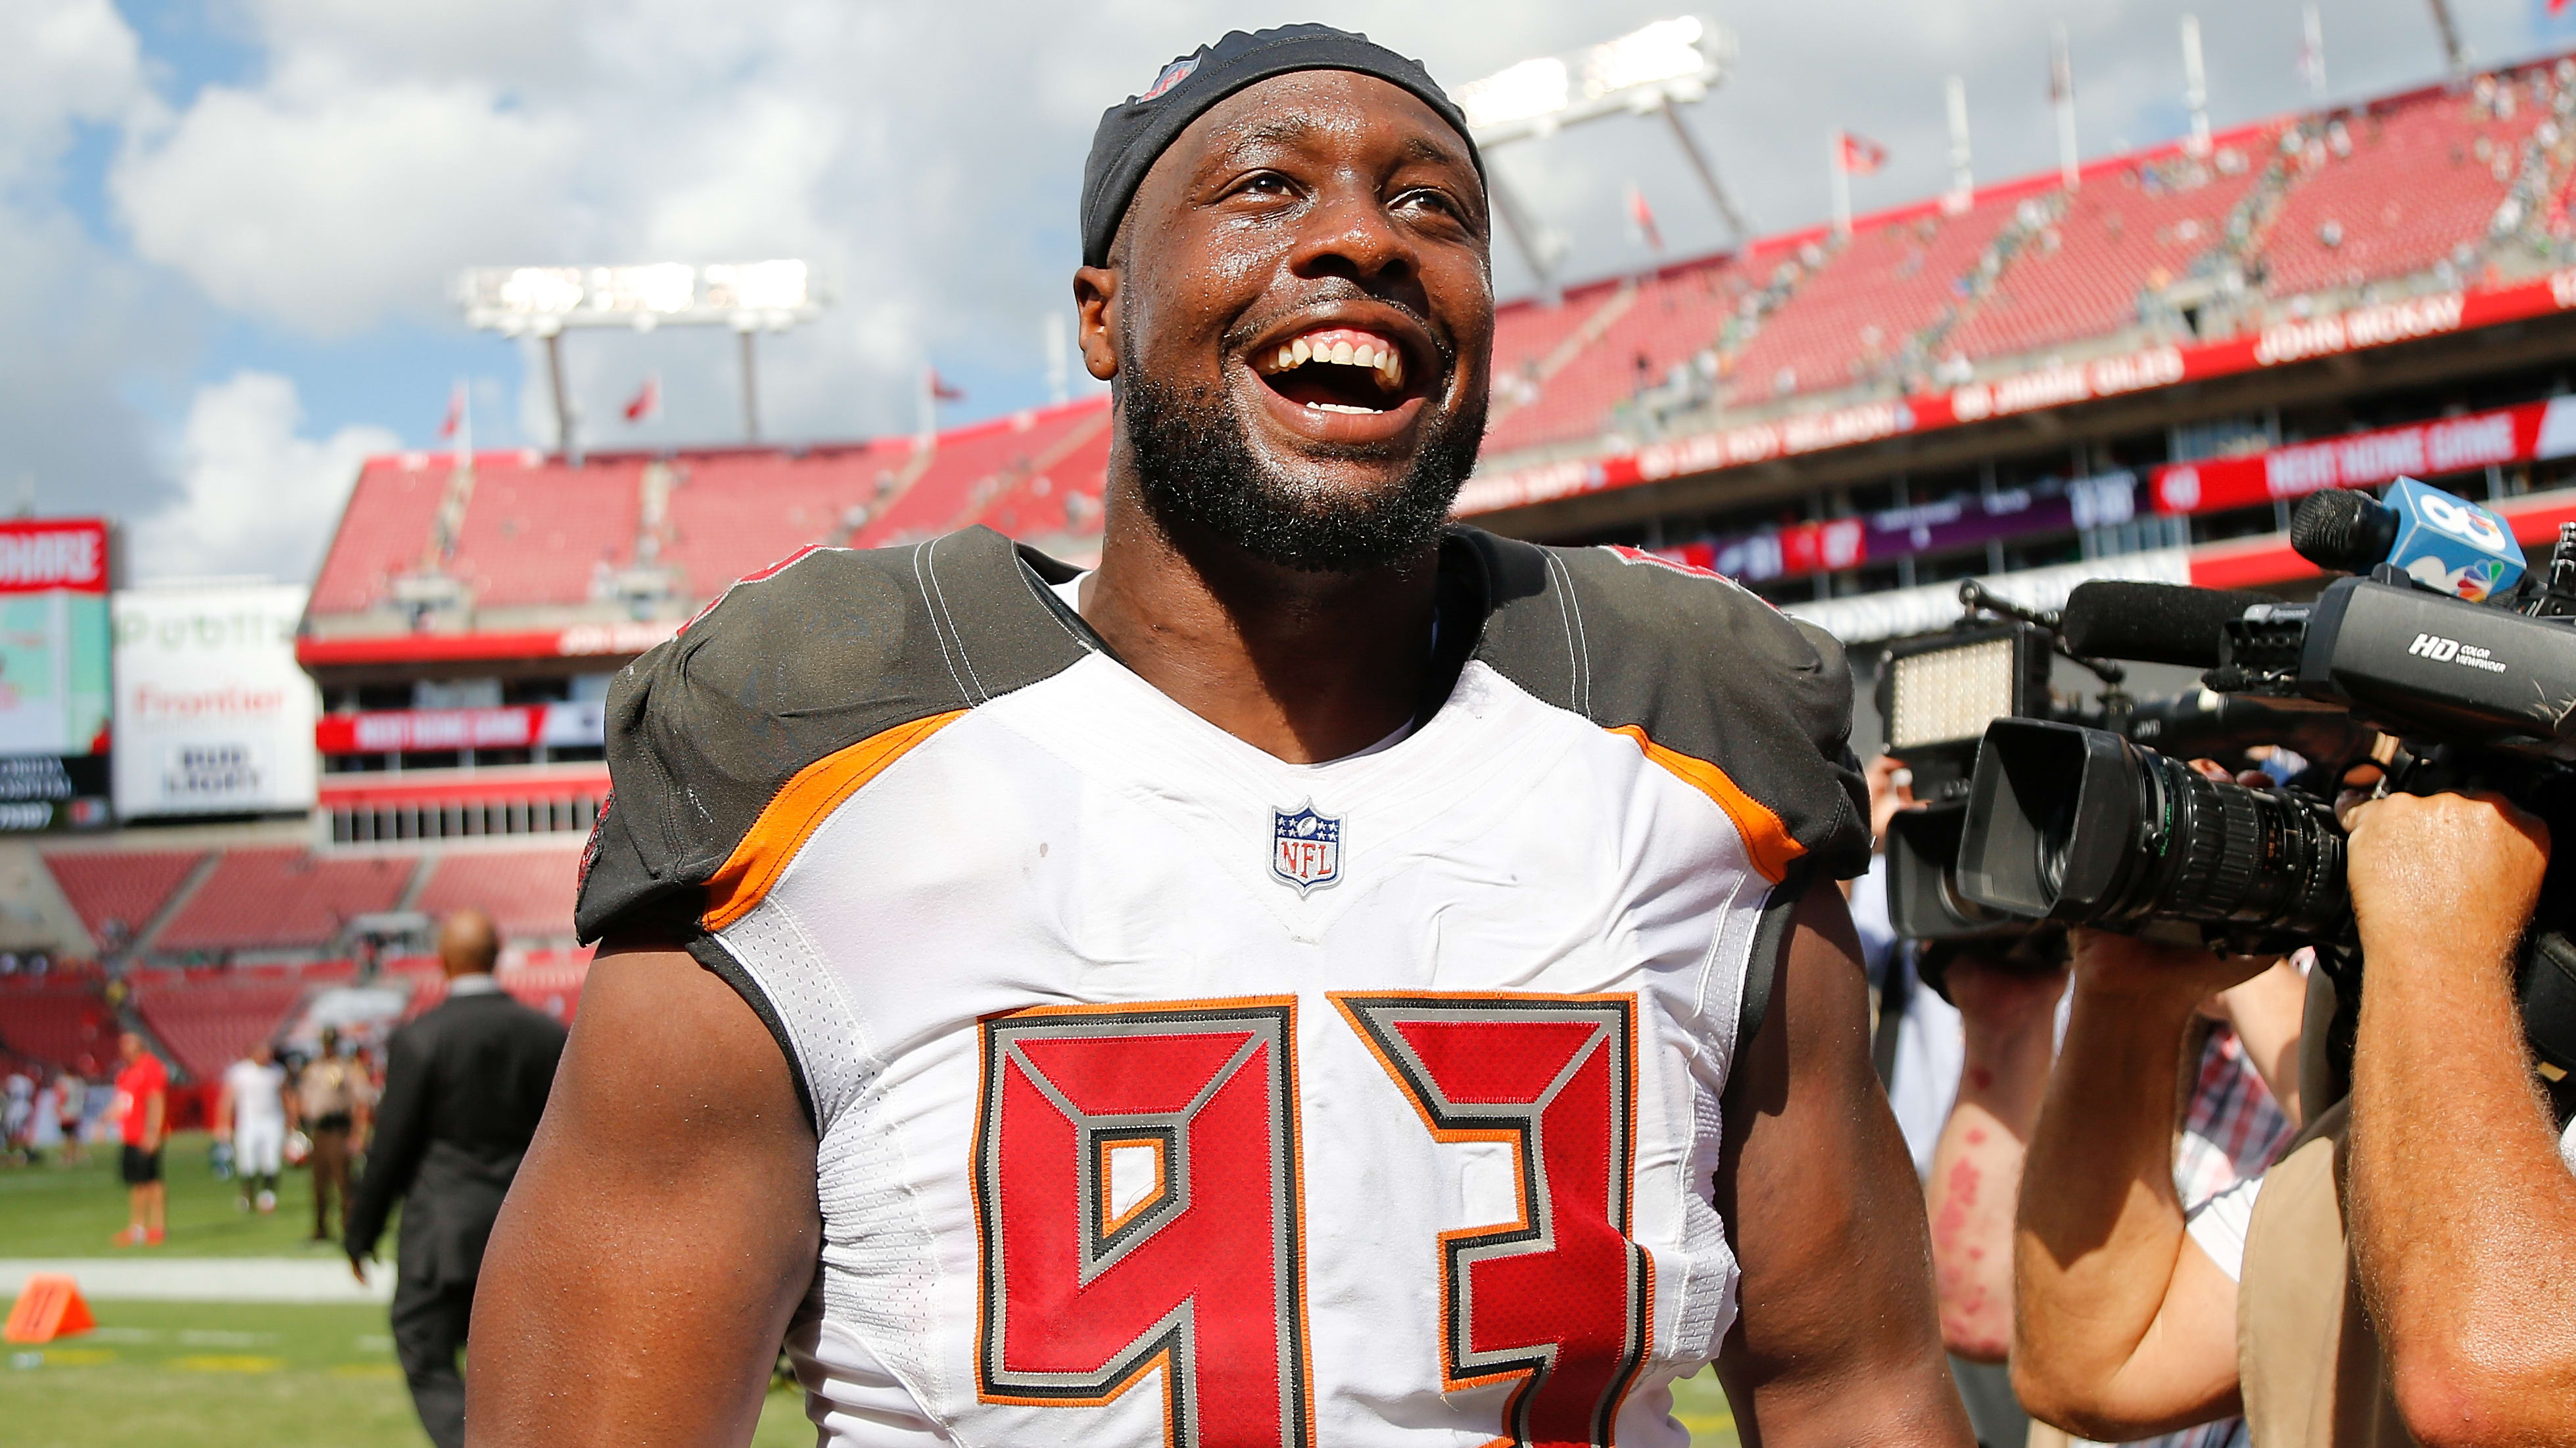 TAMPA, FL - SEPTEMBER 16:  Gerald McCoy #93 of the Tampa Bay Buccaneers reacts after they defeated the Philadelphia Eagles 27-21 at Raymond James Stadium on September 16, 2018 in Tampa, Florida.  (Photo by Michael Reaves/Getty Images)